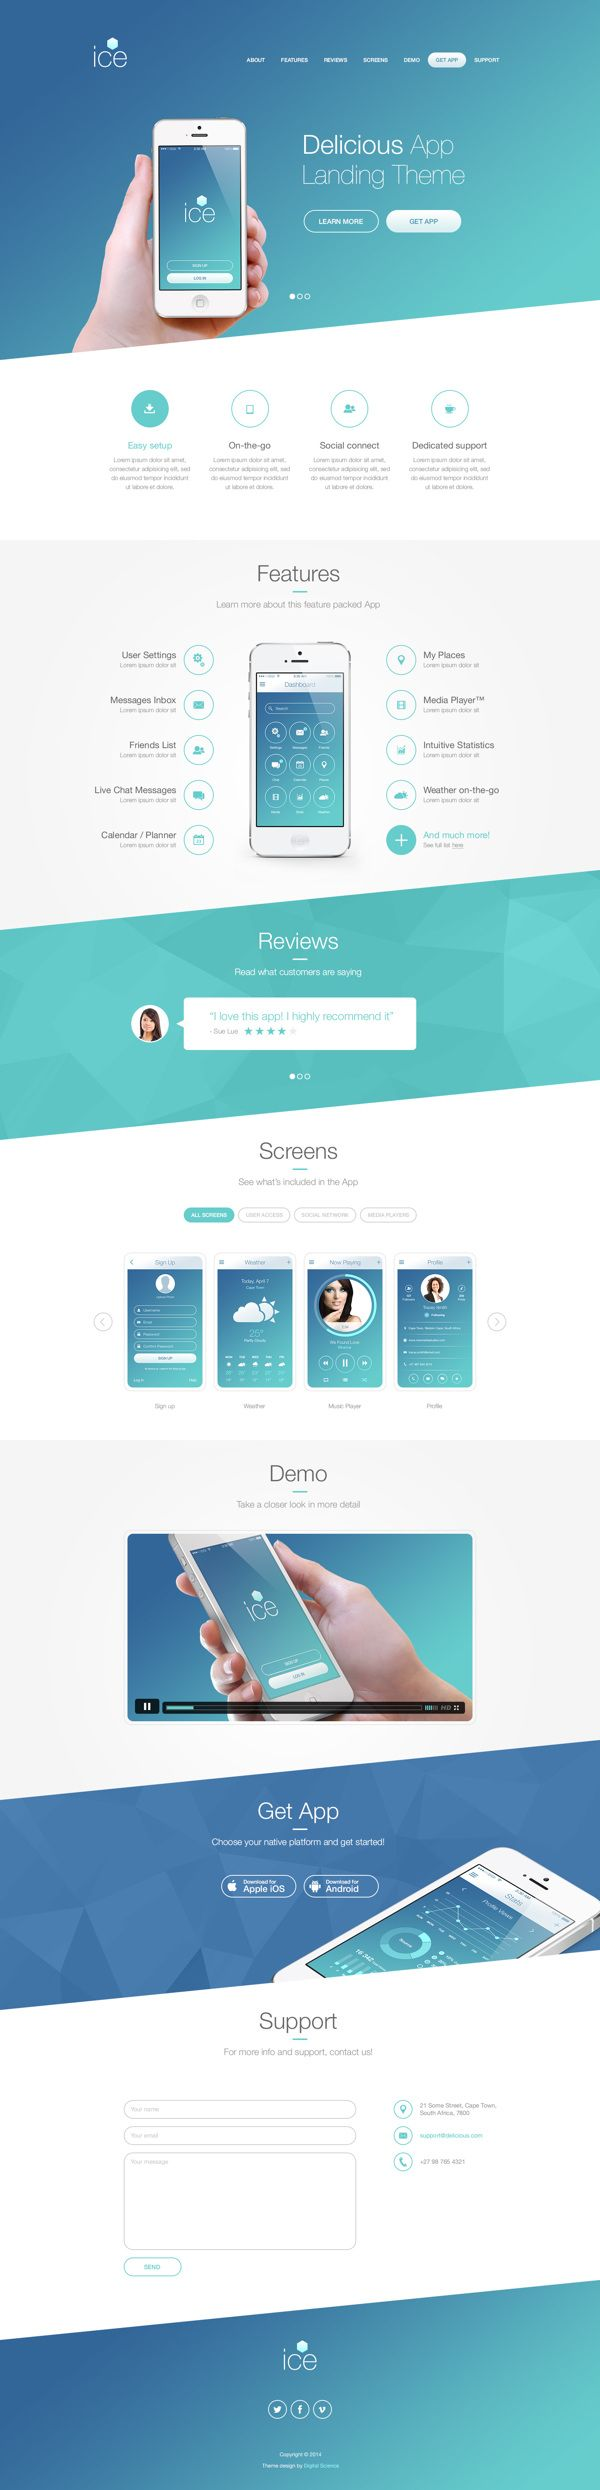 Strong diagonal flow down the page through background imagery.  Landing page theme by Pierre Marais, via Behance.